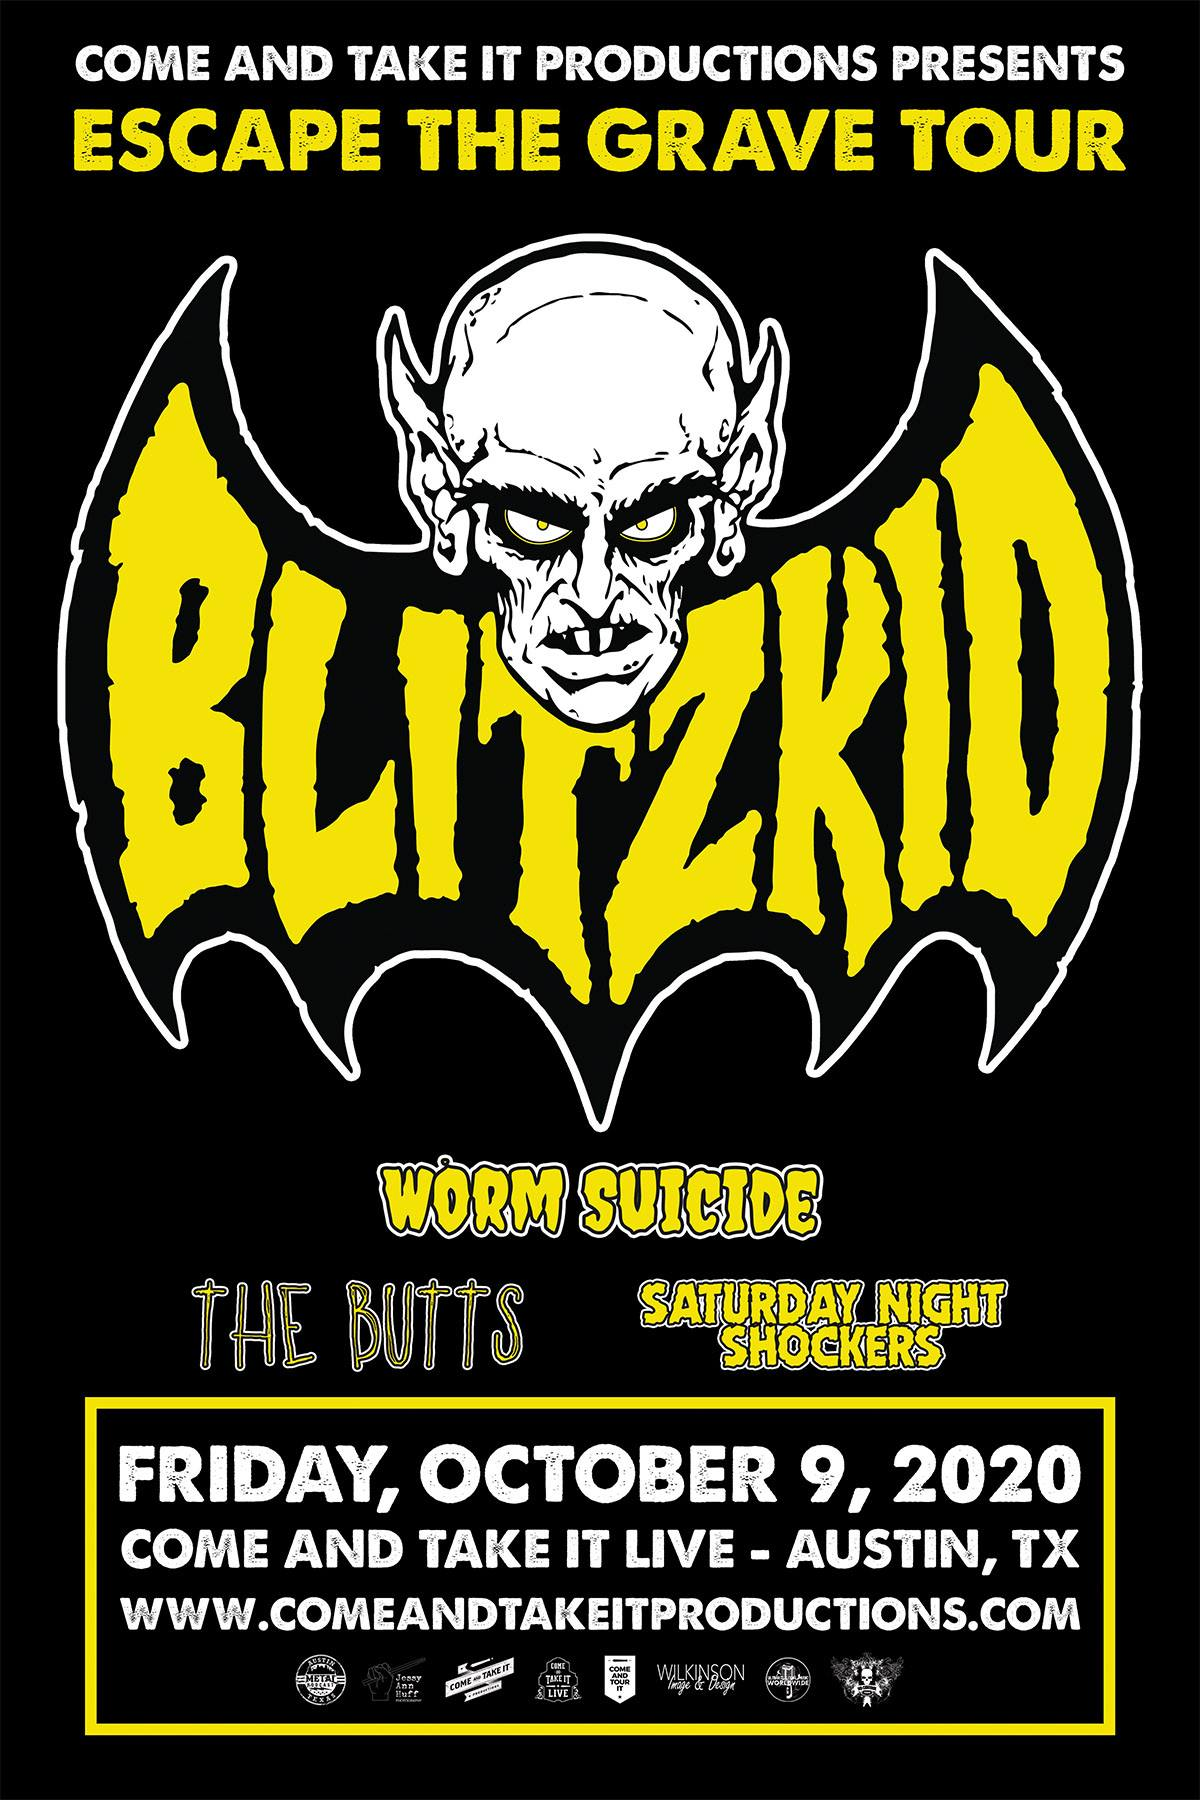 Blitzkid, Worm Suicide, The Butts and more